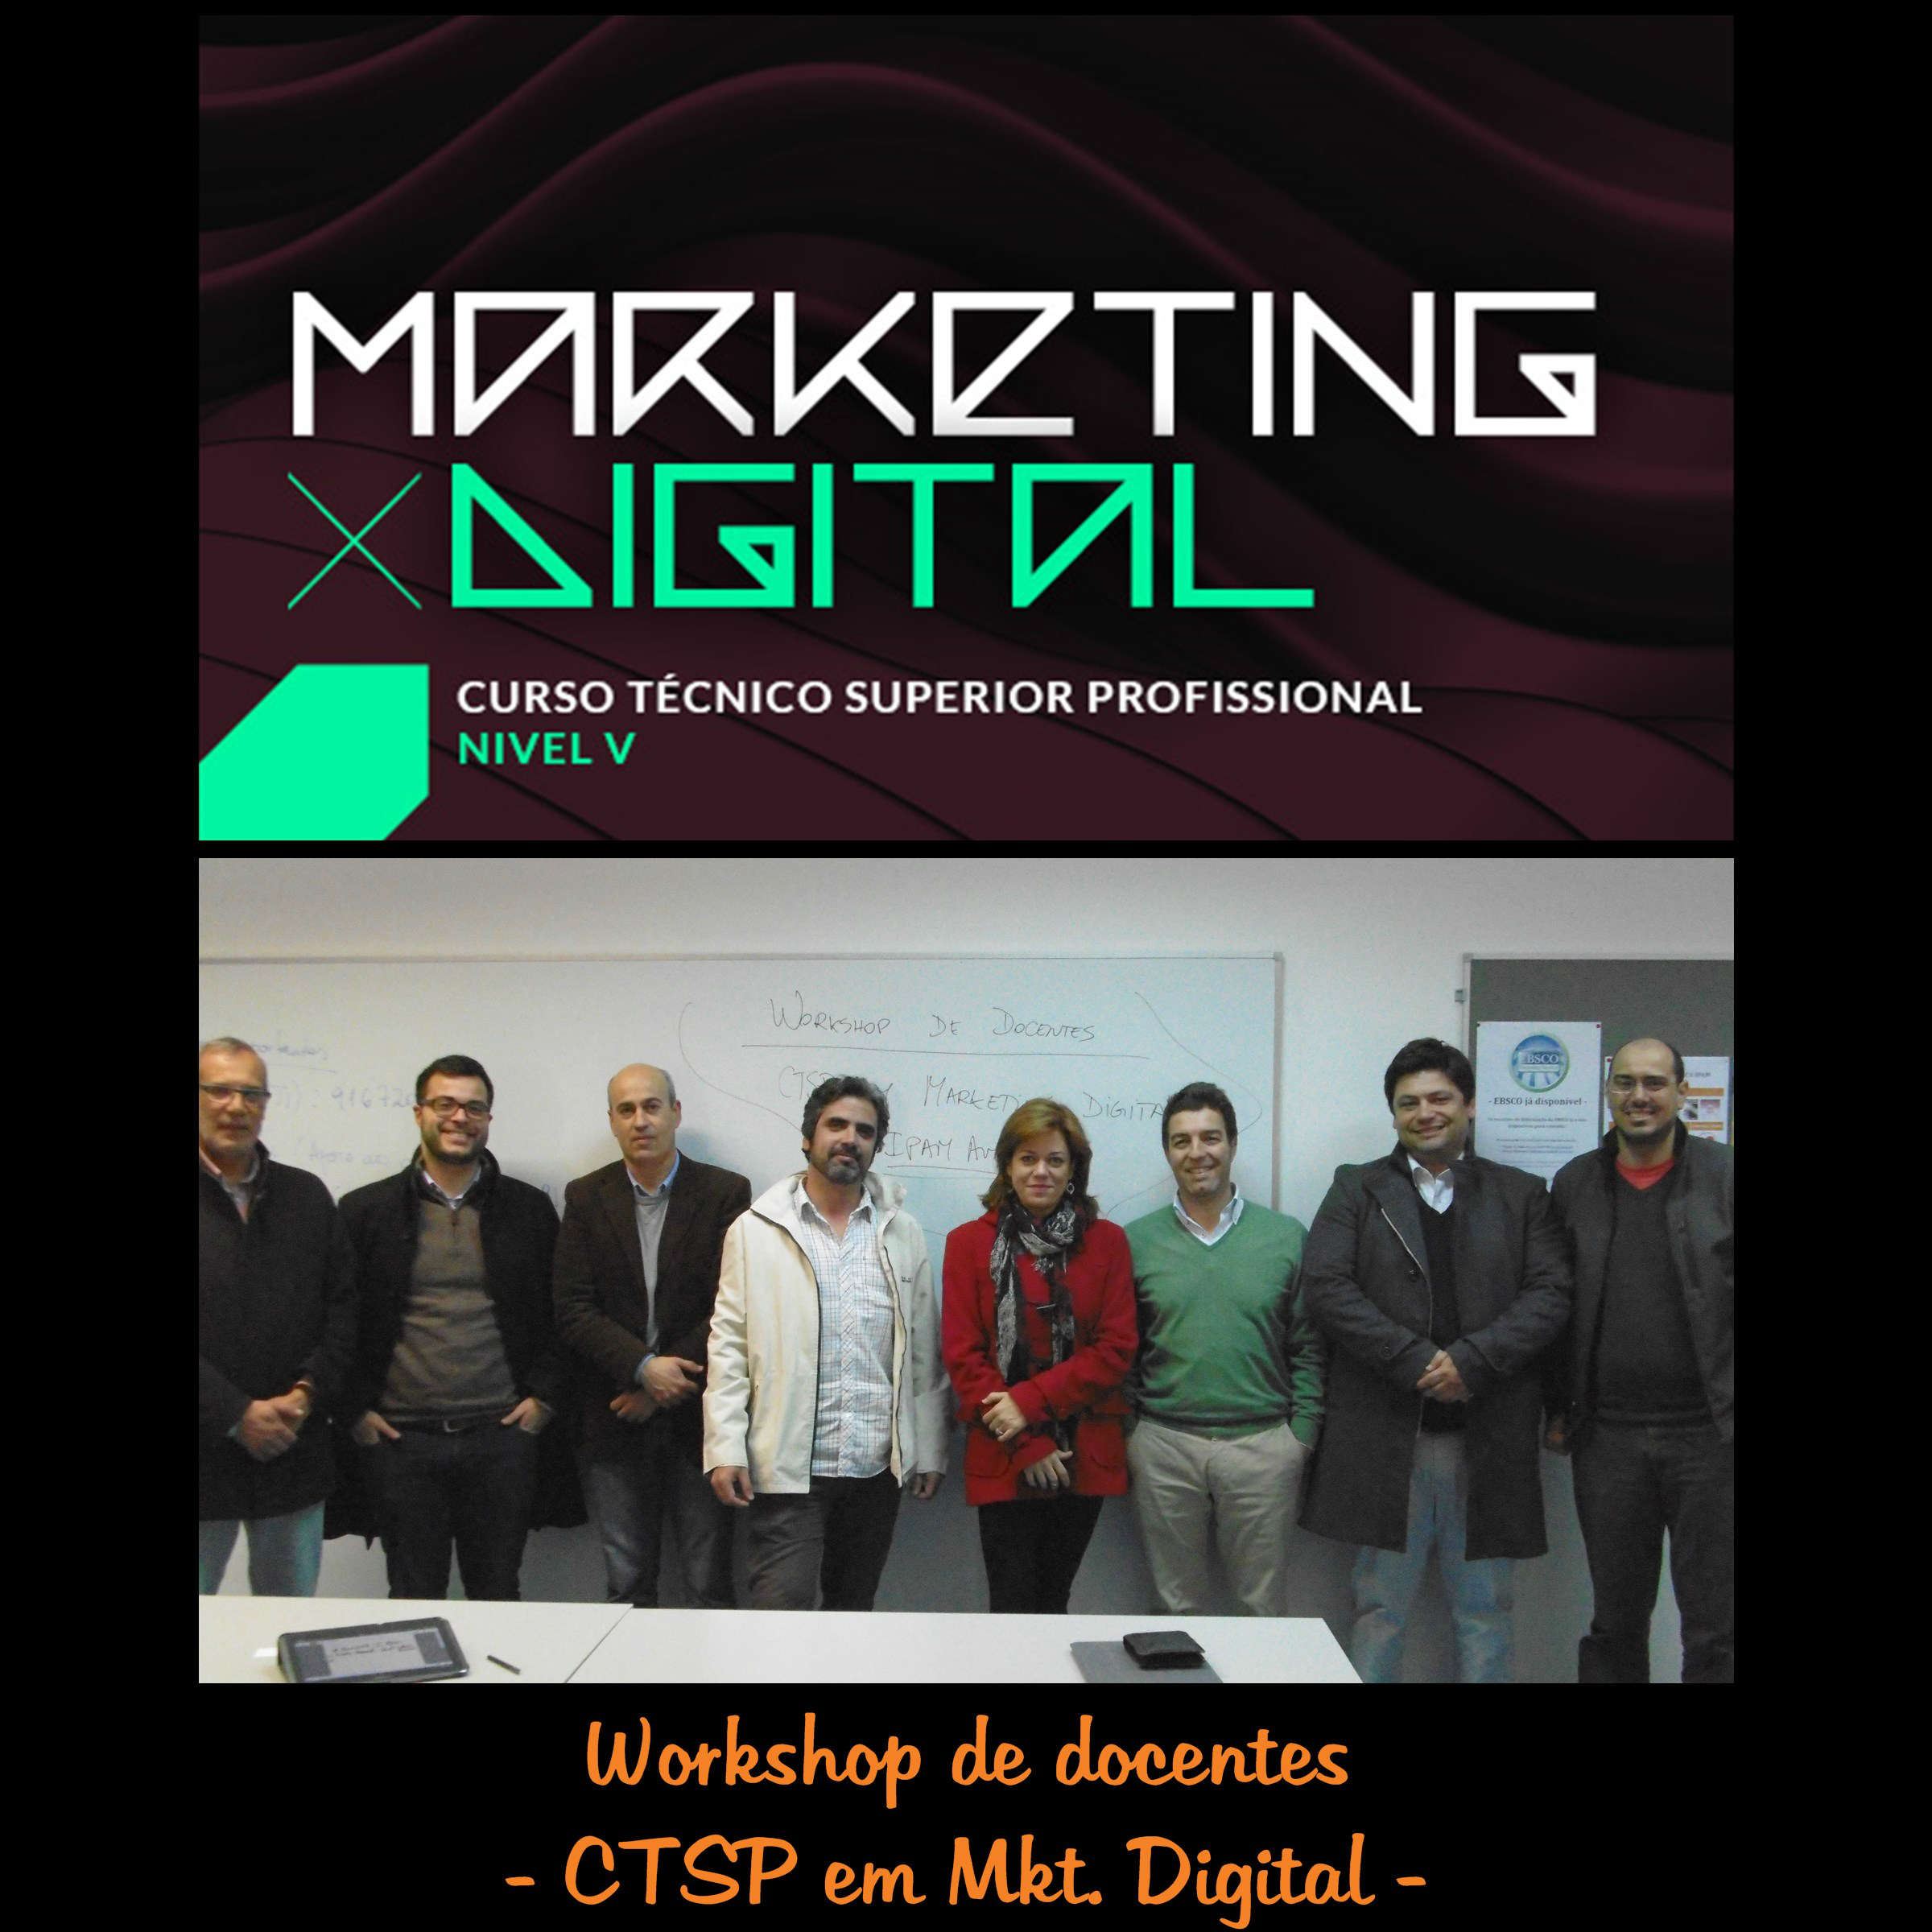 Marketing digital IPAM Aveiro Plano